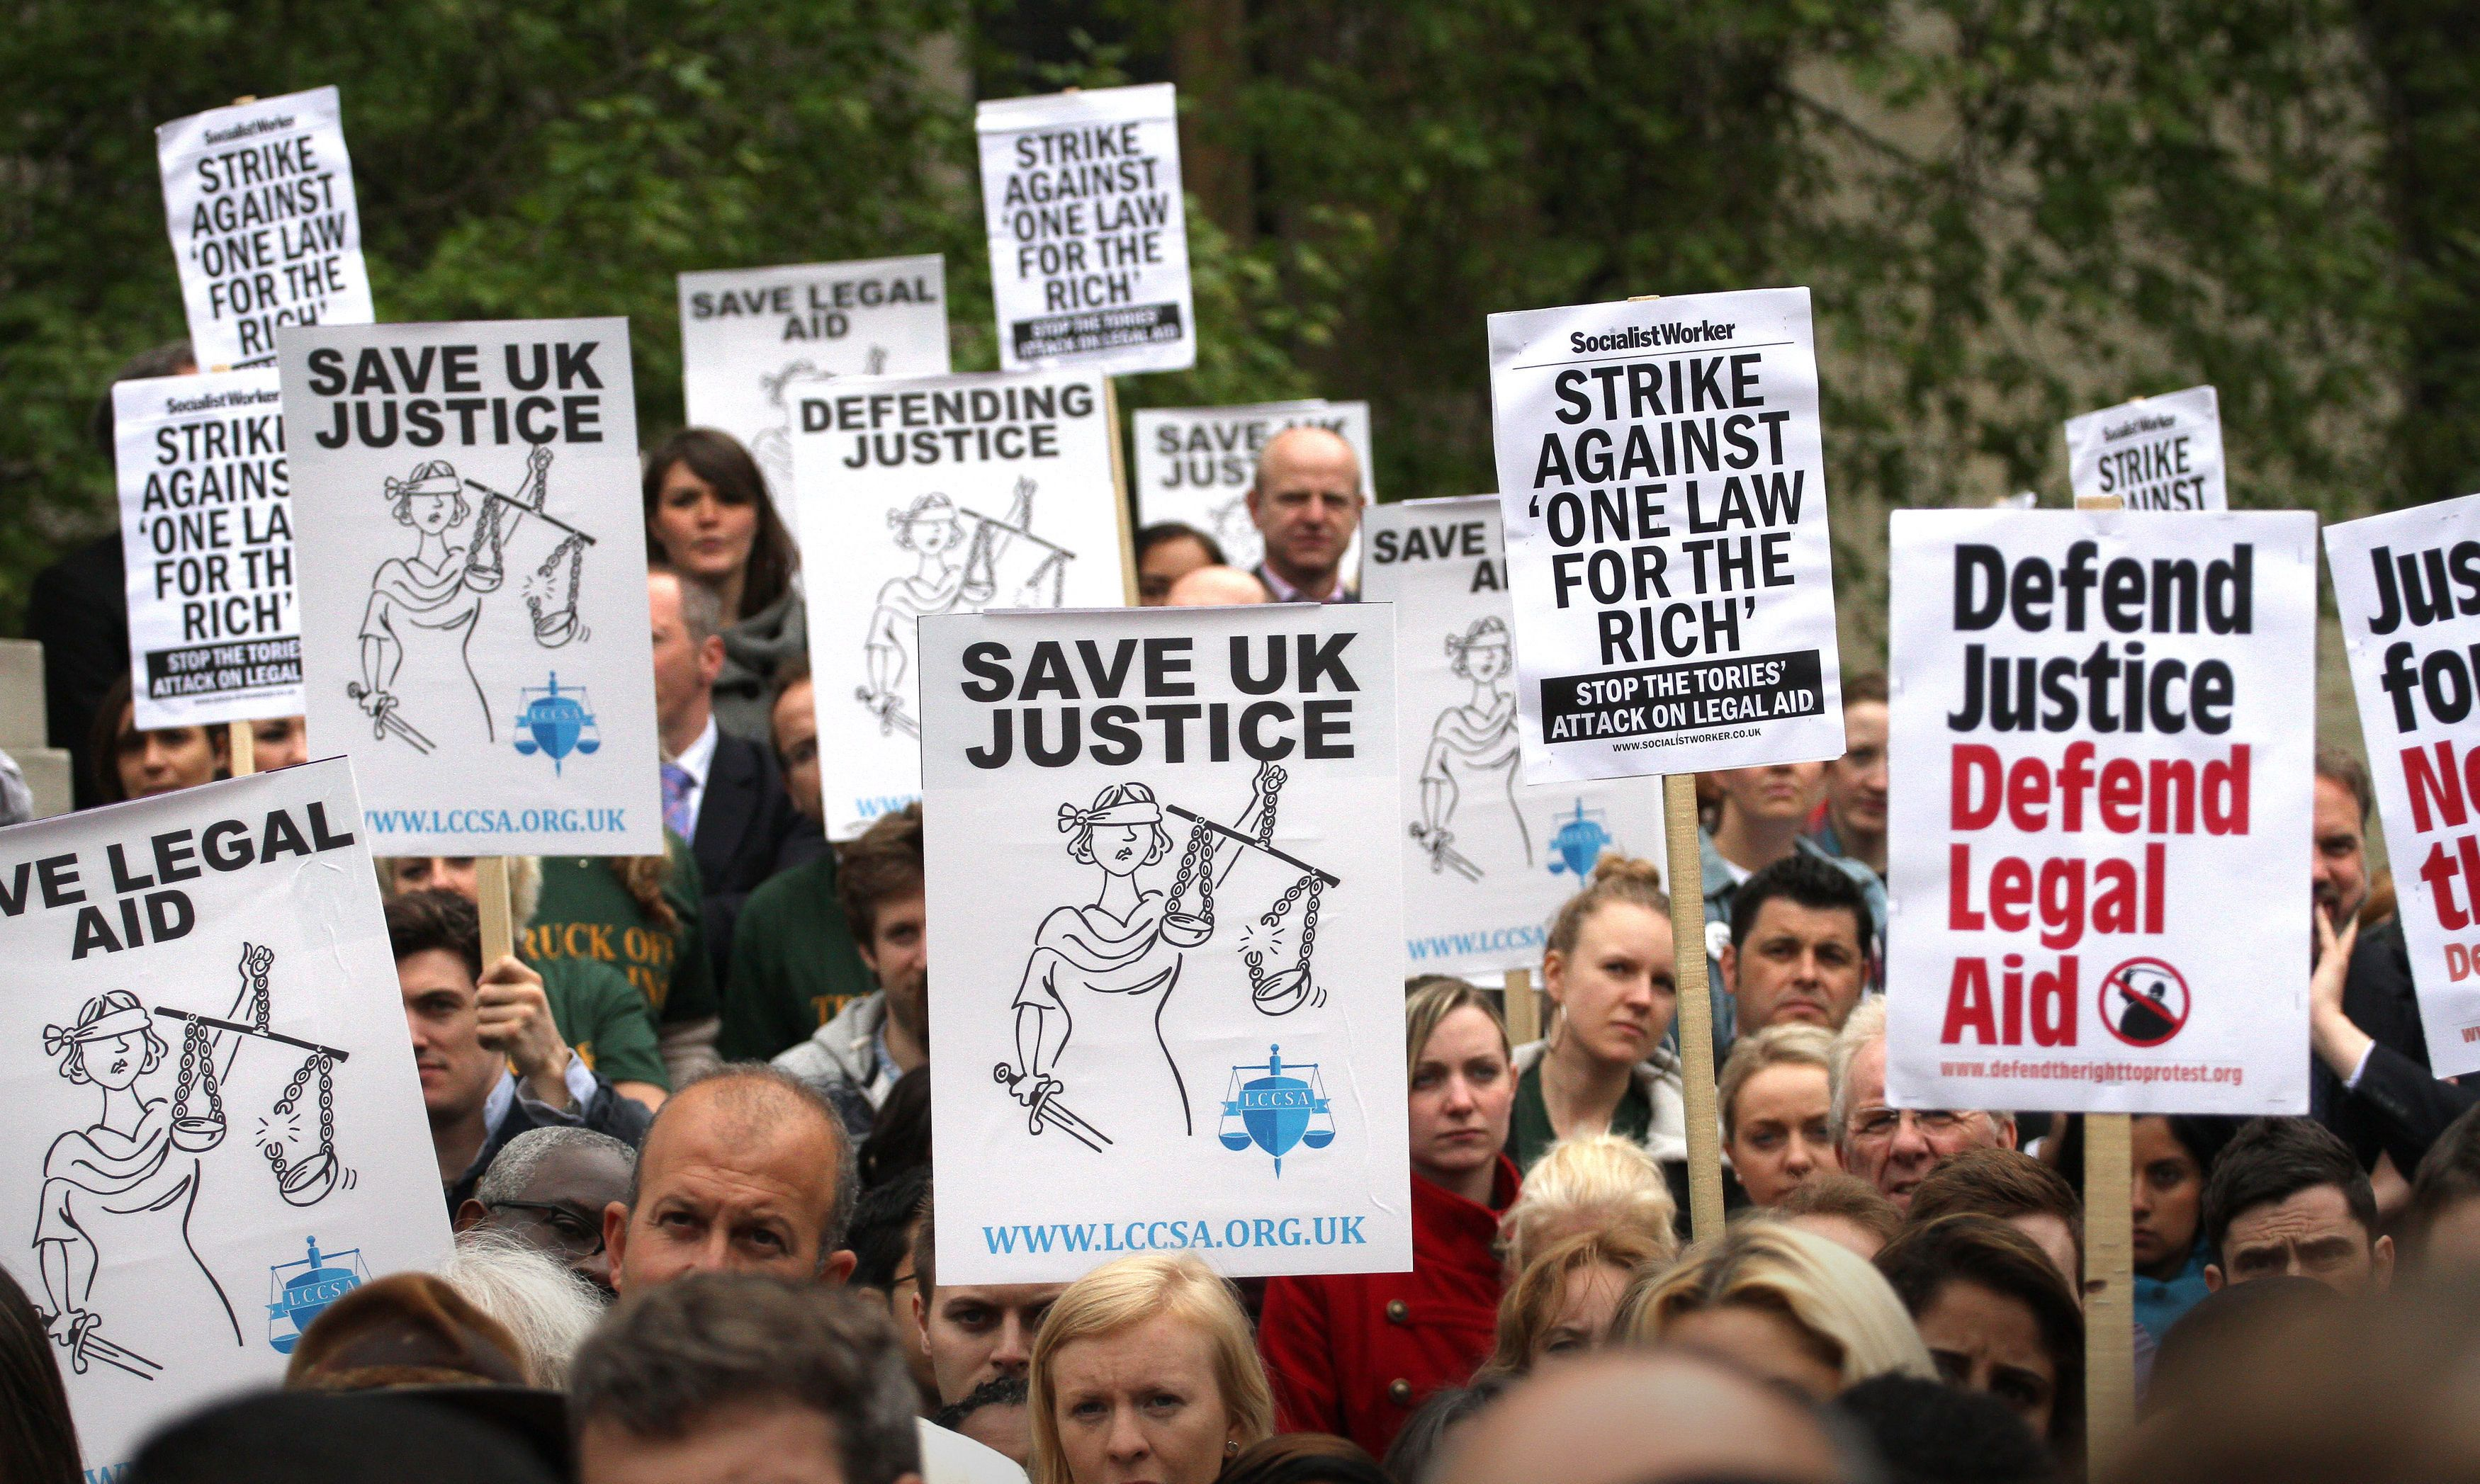 Immigrants Facing Deportation 'Could Be Unable To Defend Themselves' After Legal Aid